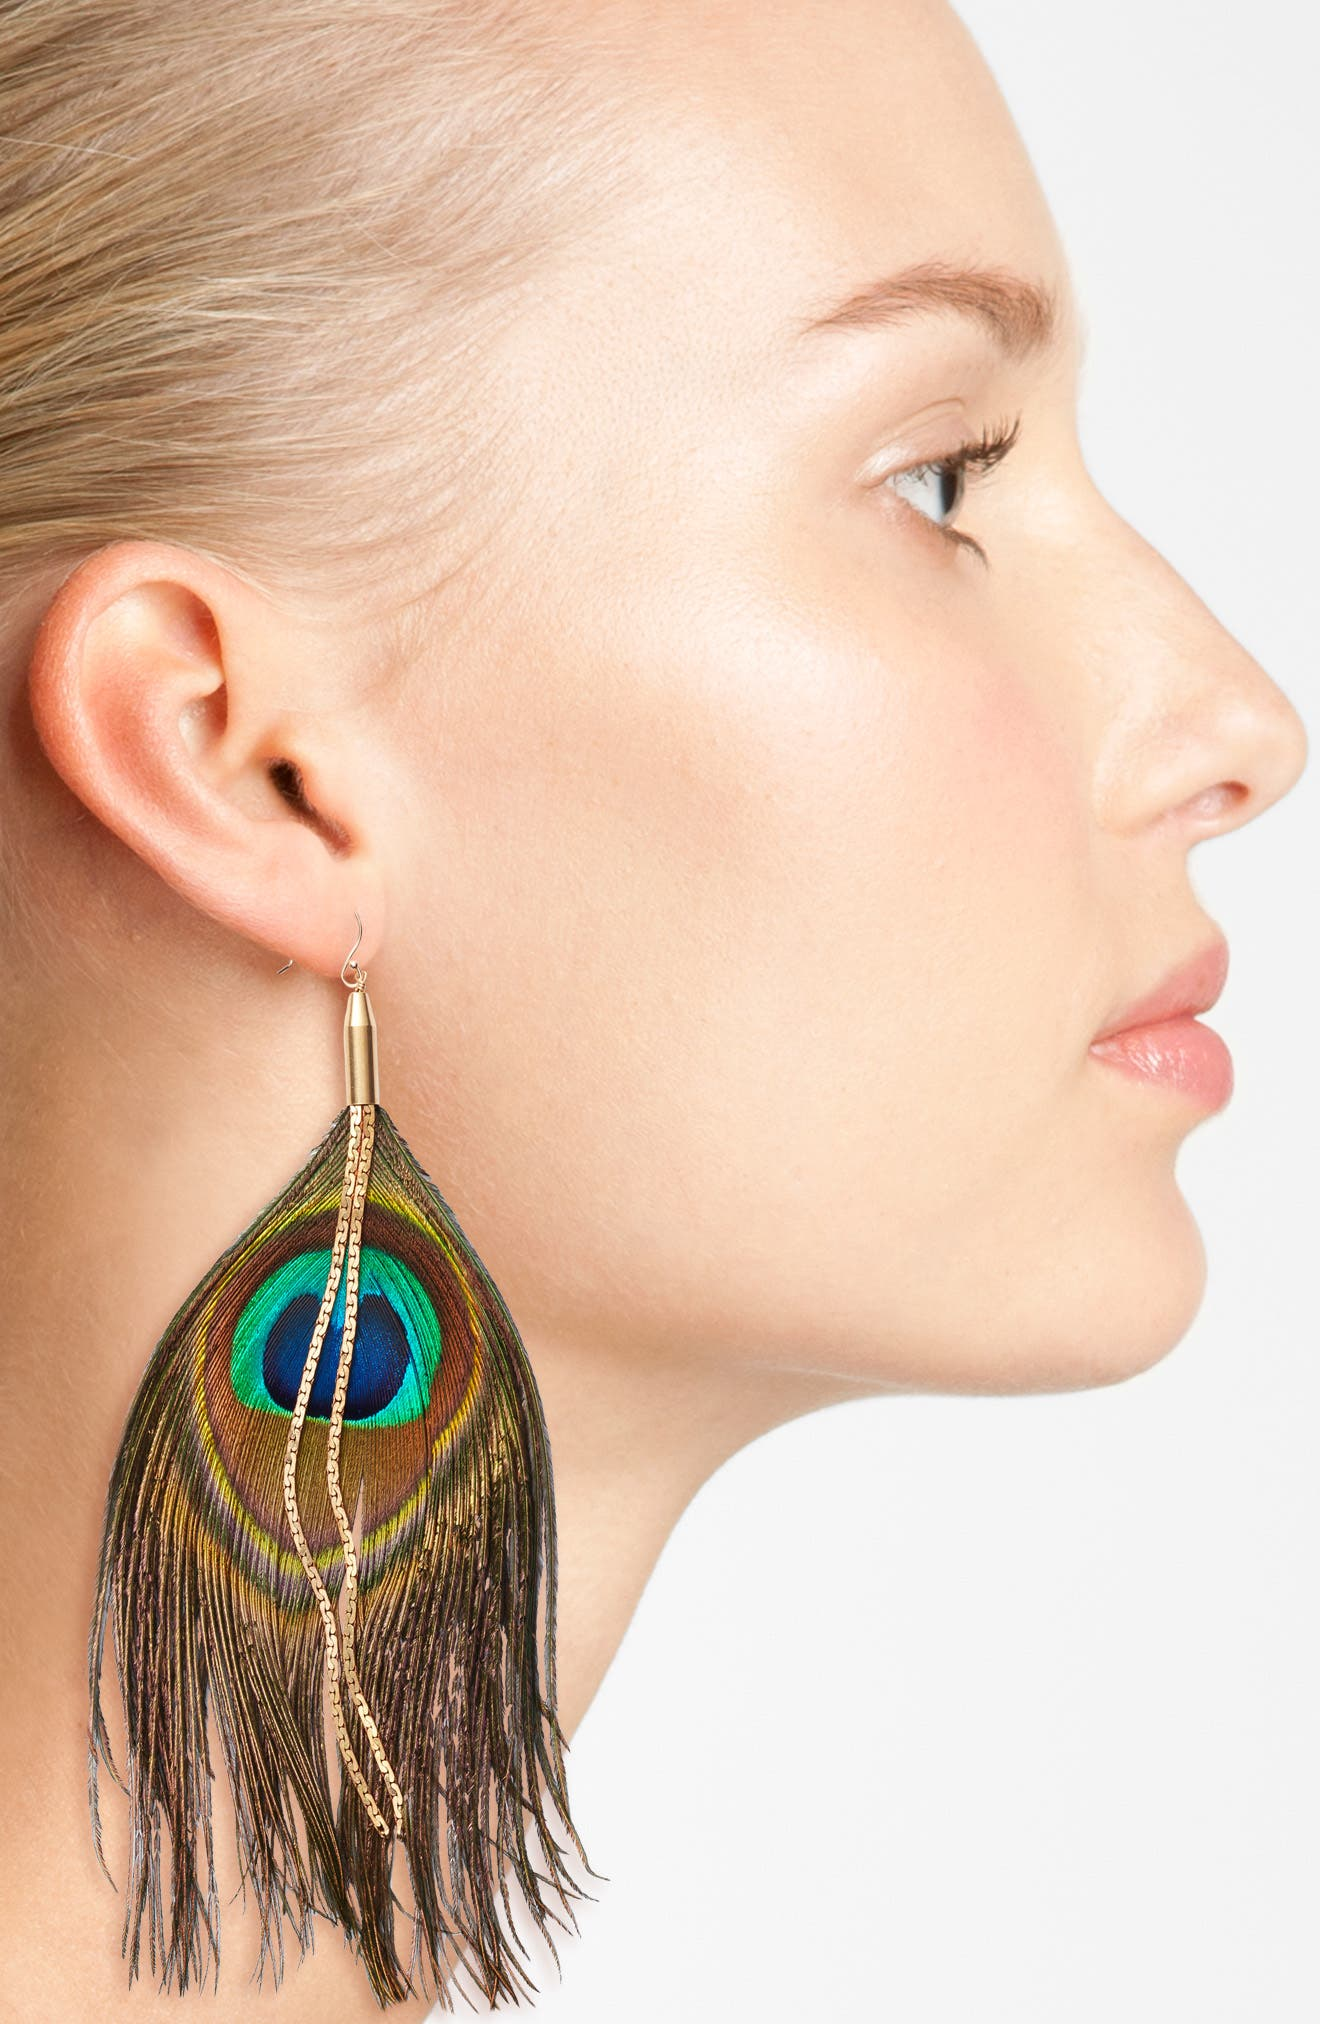 Peacock Feather Earrings,                             Alternate thumbnail 2, color,                             TURQUOISE/ AQUA